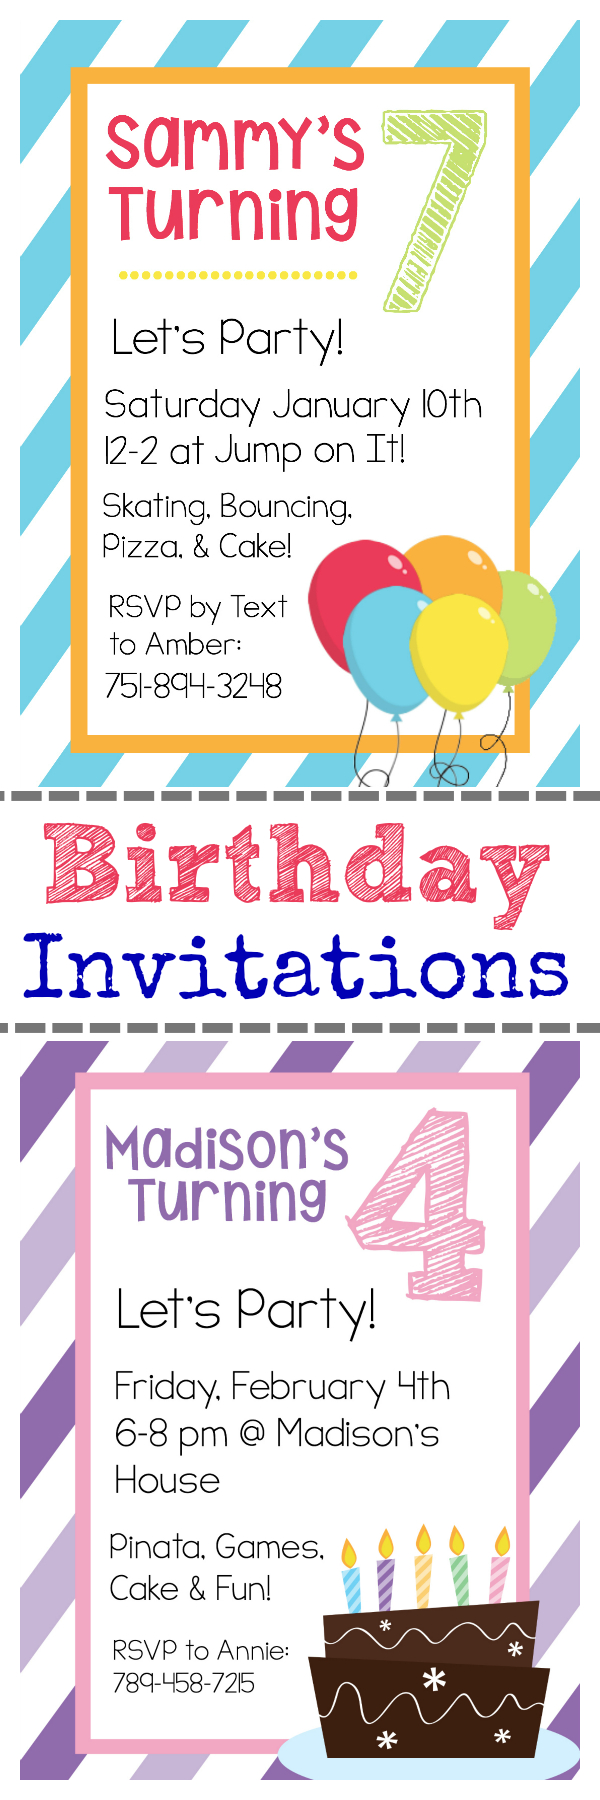 Free Printable Birthday Invitation Templates - Free Printable Birthday Invitations With Pictures